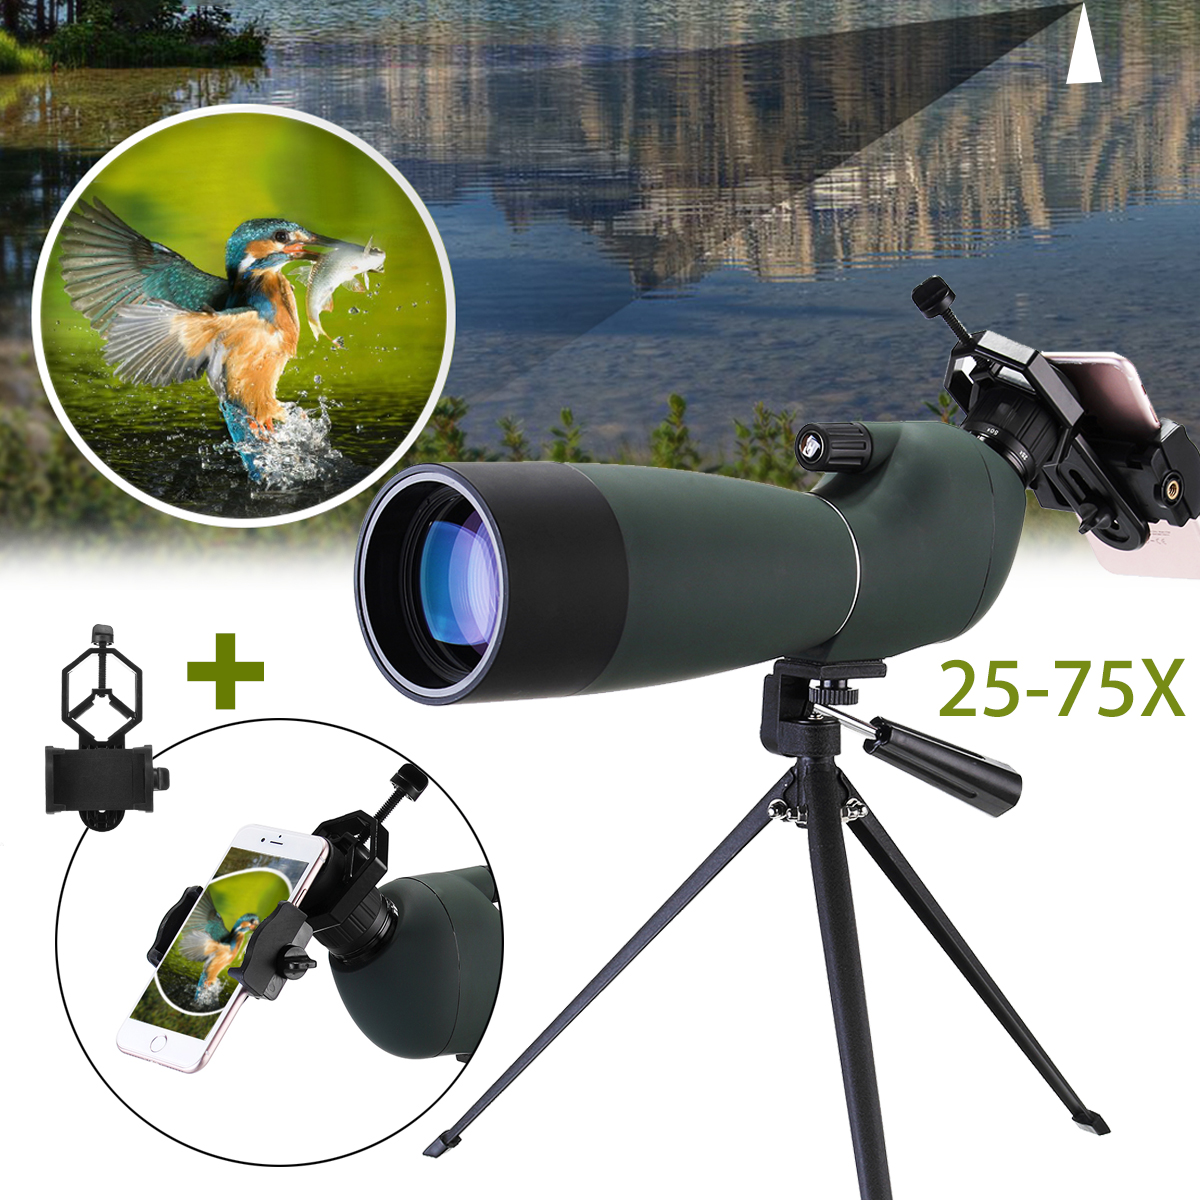 Spotting Scope BAK4 25 75x70 Zoom Monocular Telescope Waterproof Binoculars with Tripod Phone Holder for Birdwatch Hunting